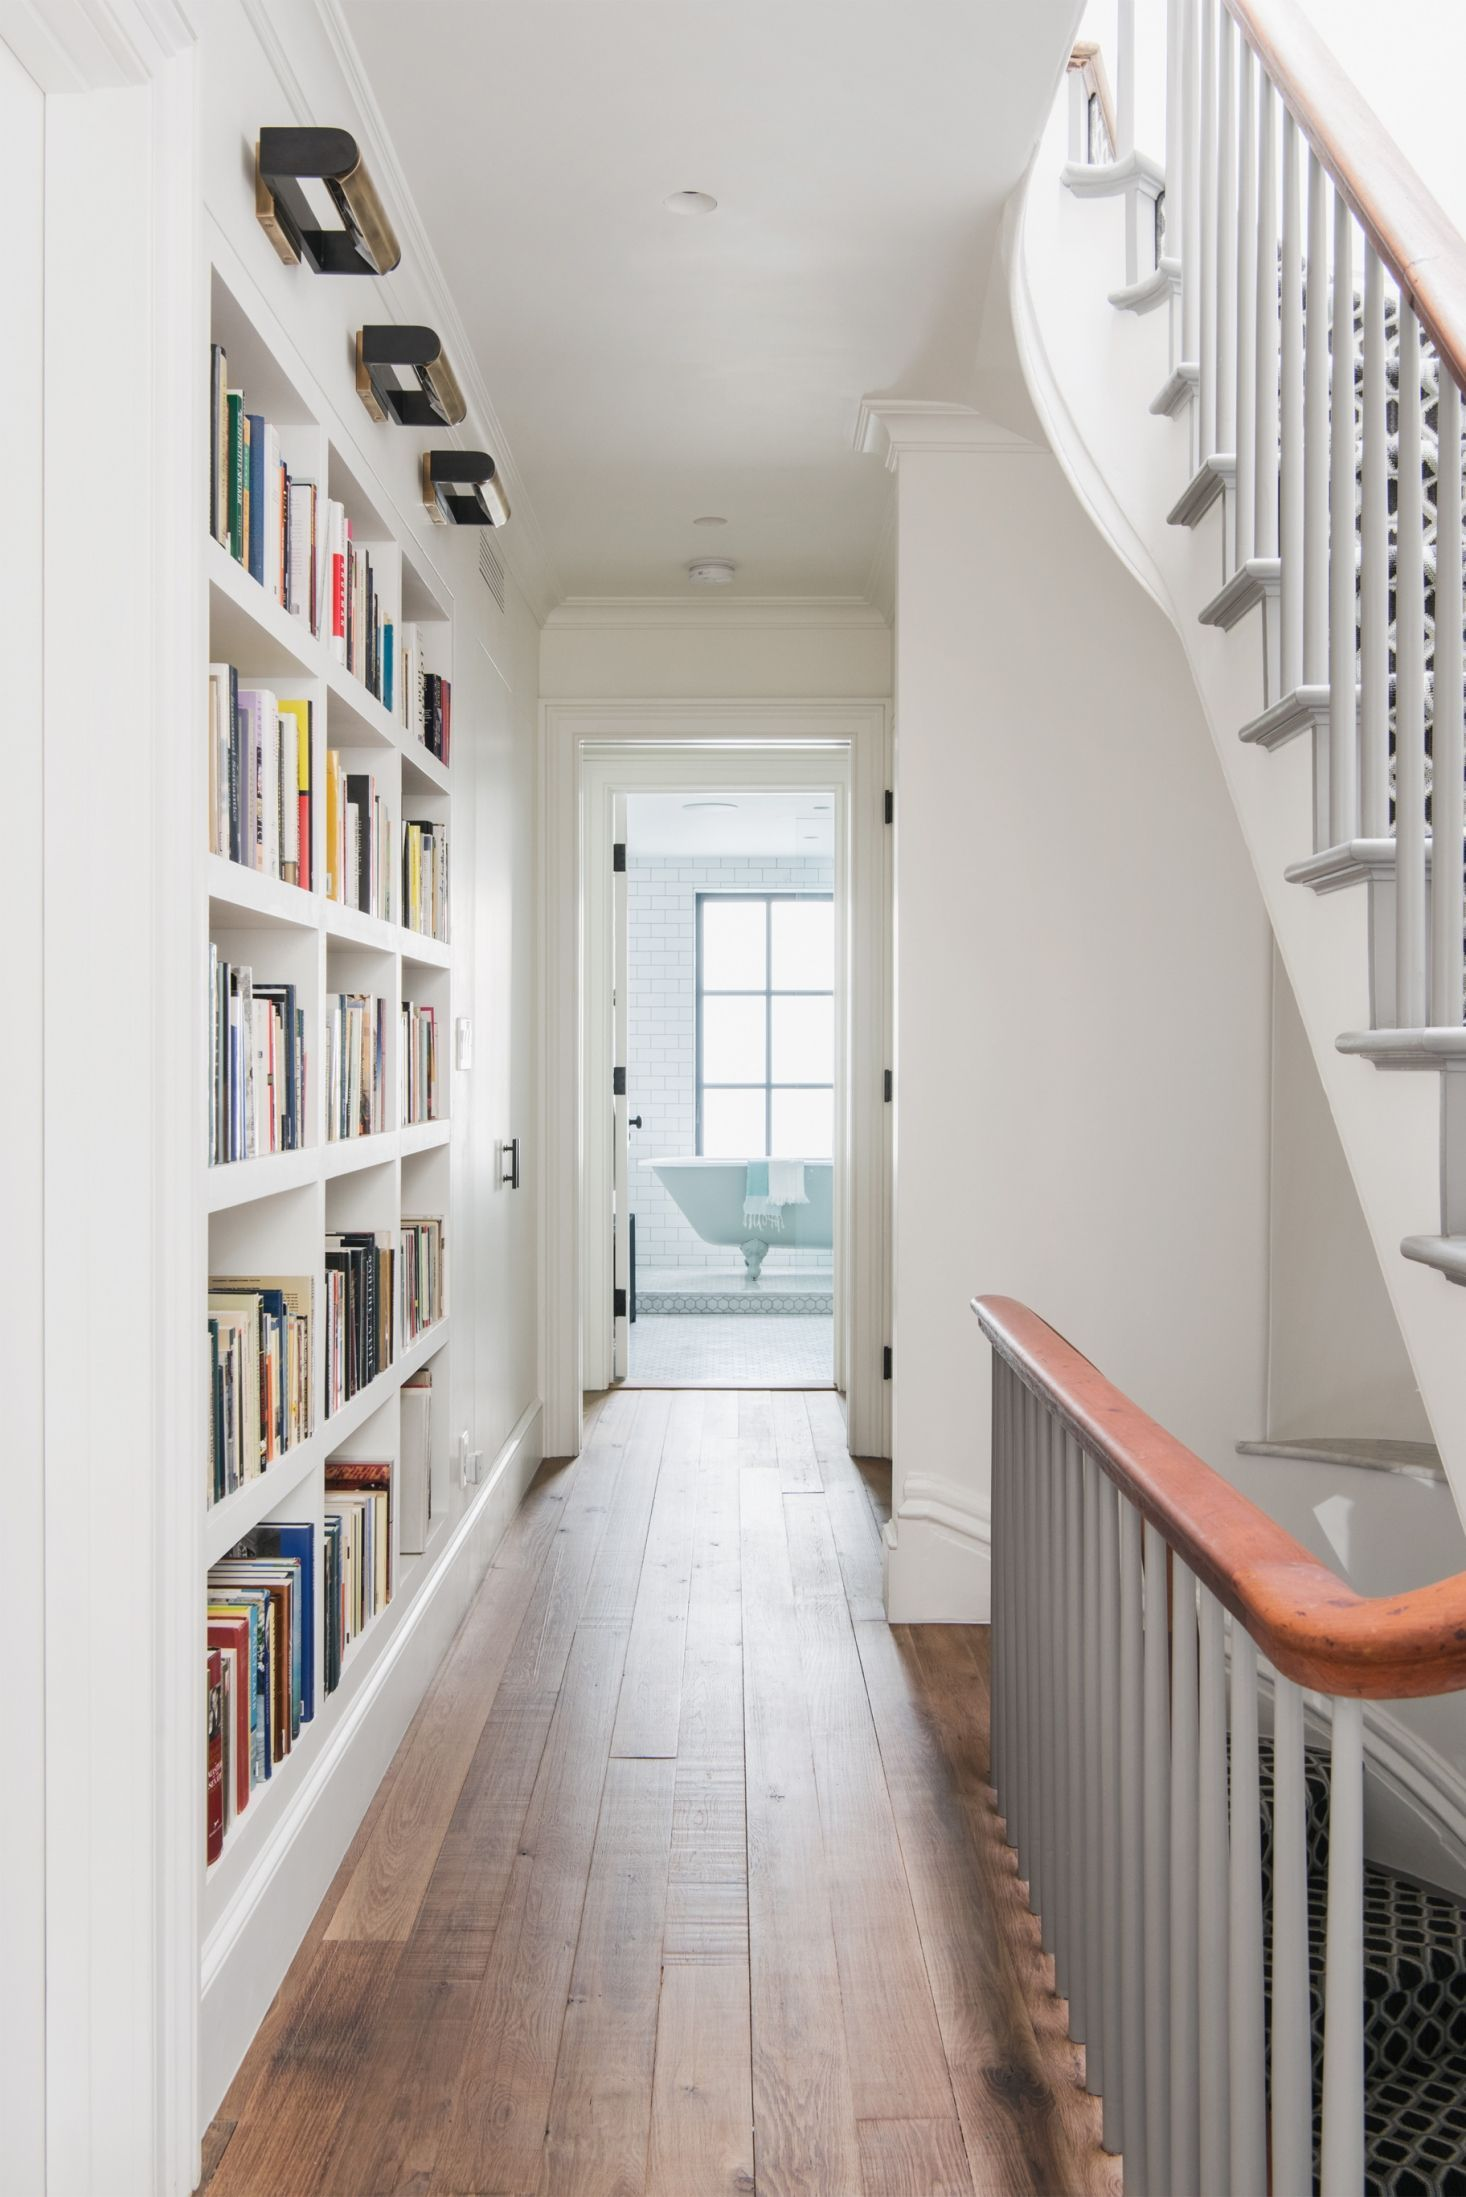 Narrow hallway decor  A builtin bookcase beautifully maximizes storage space in this